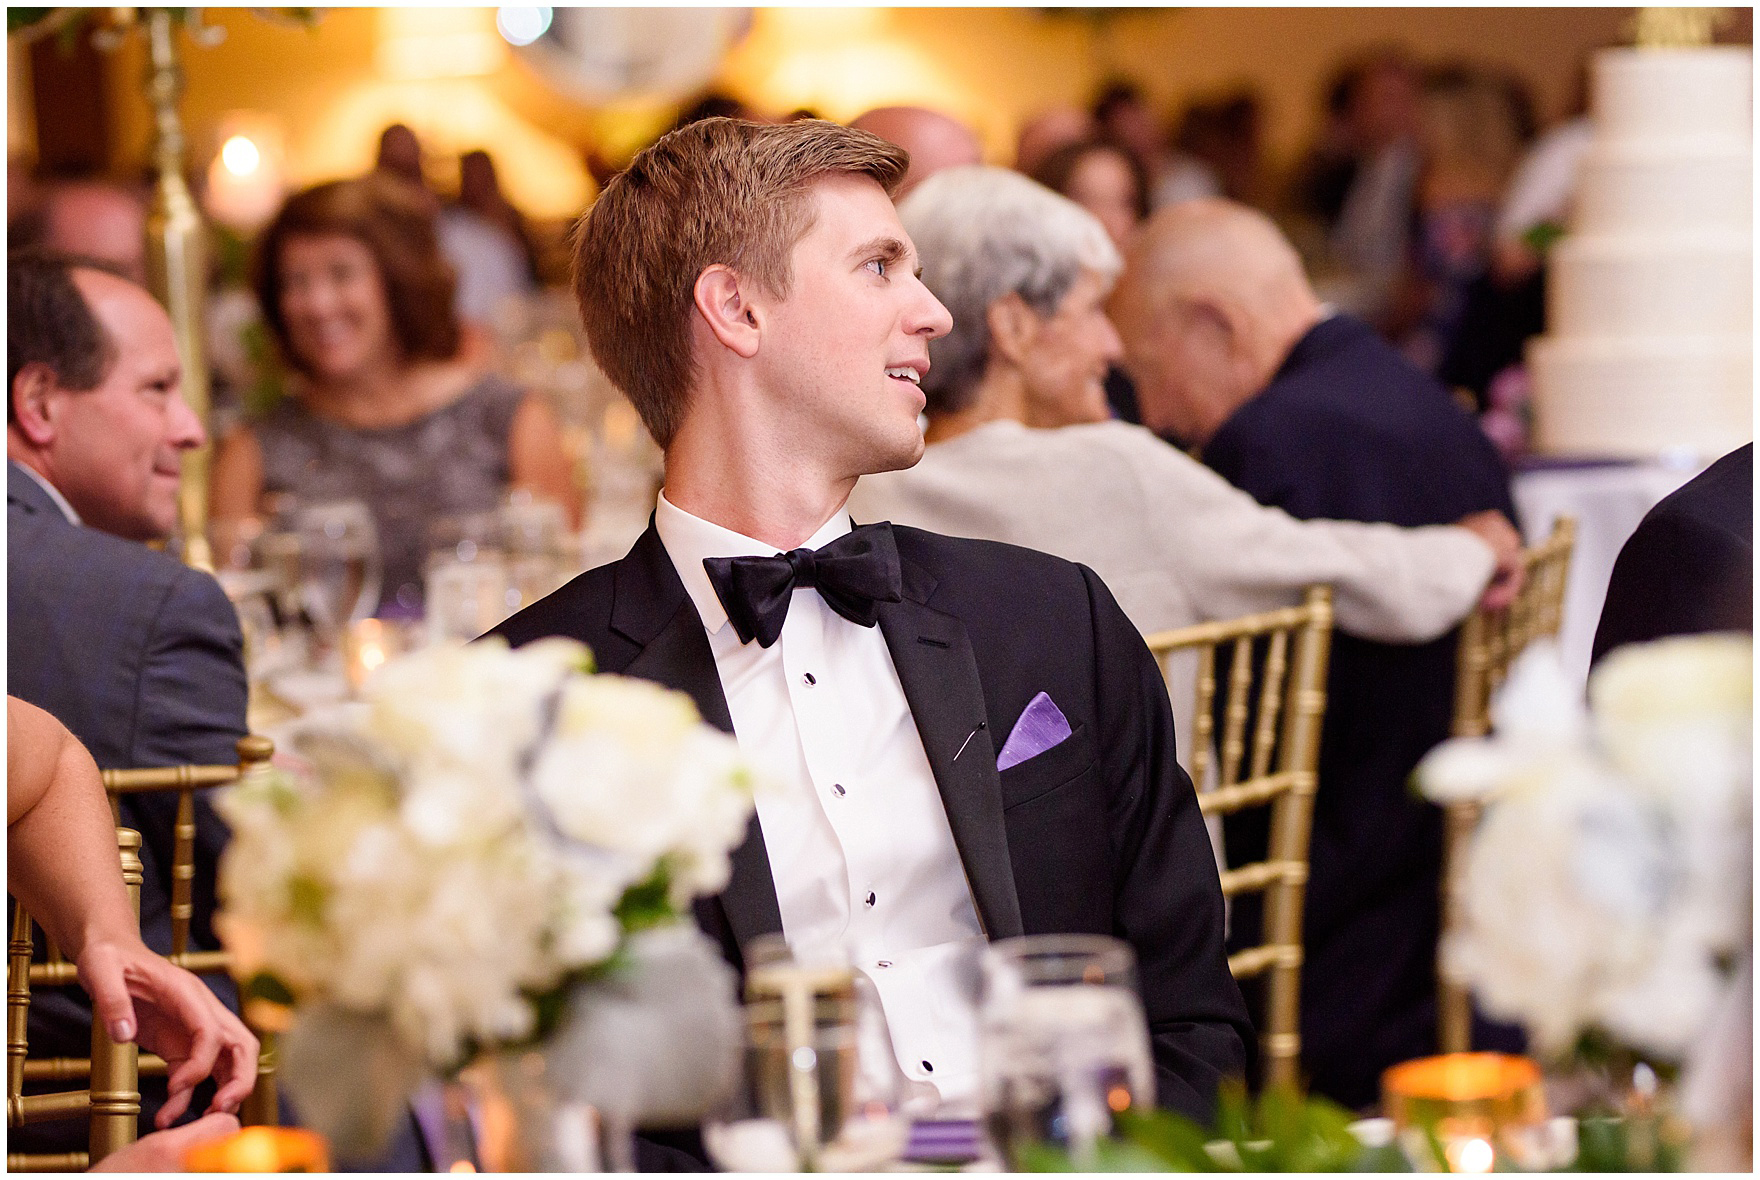 Guests listen to a toast during a Glen Club Glenview Illinois wedding.